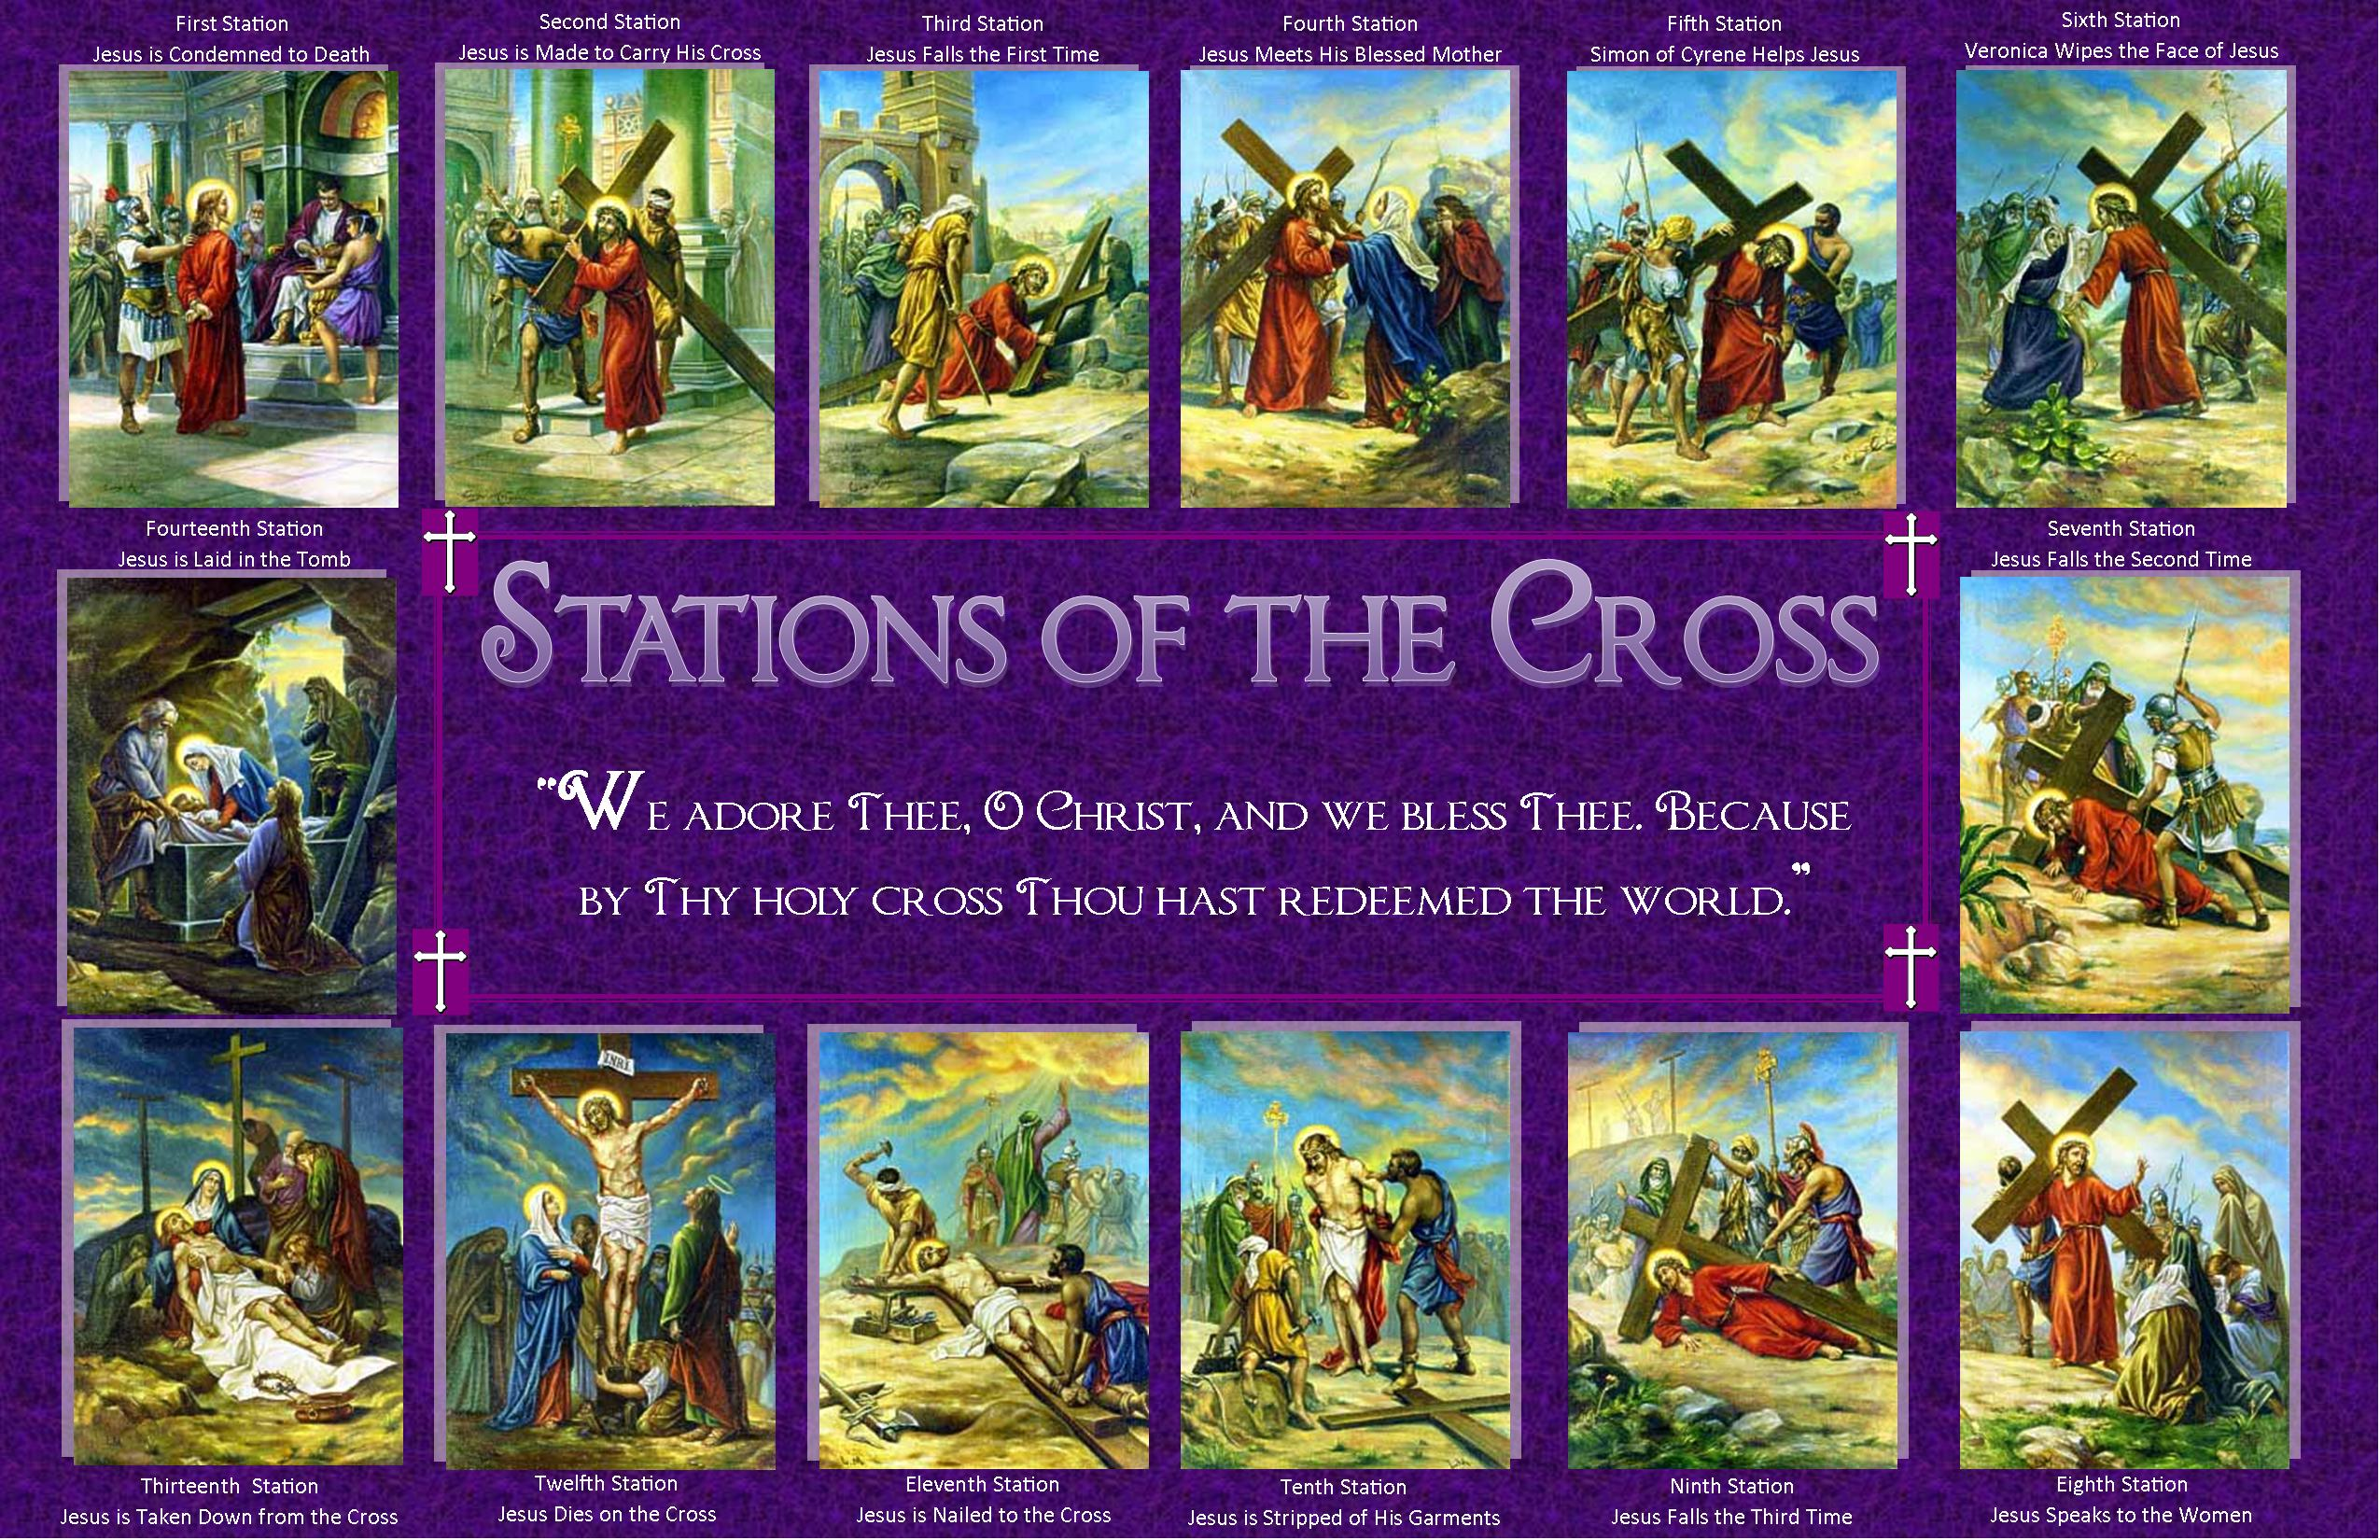 Living Stations Of The Cross March 27 By Cathedral Parish School Students